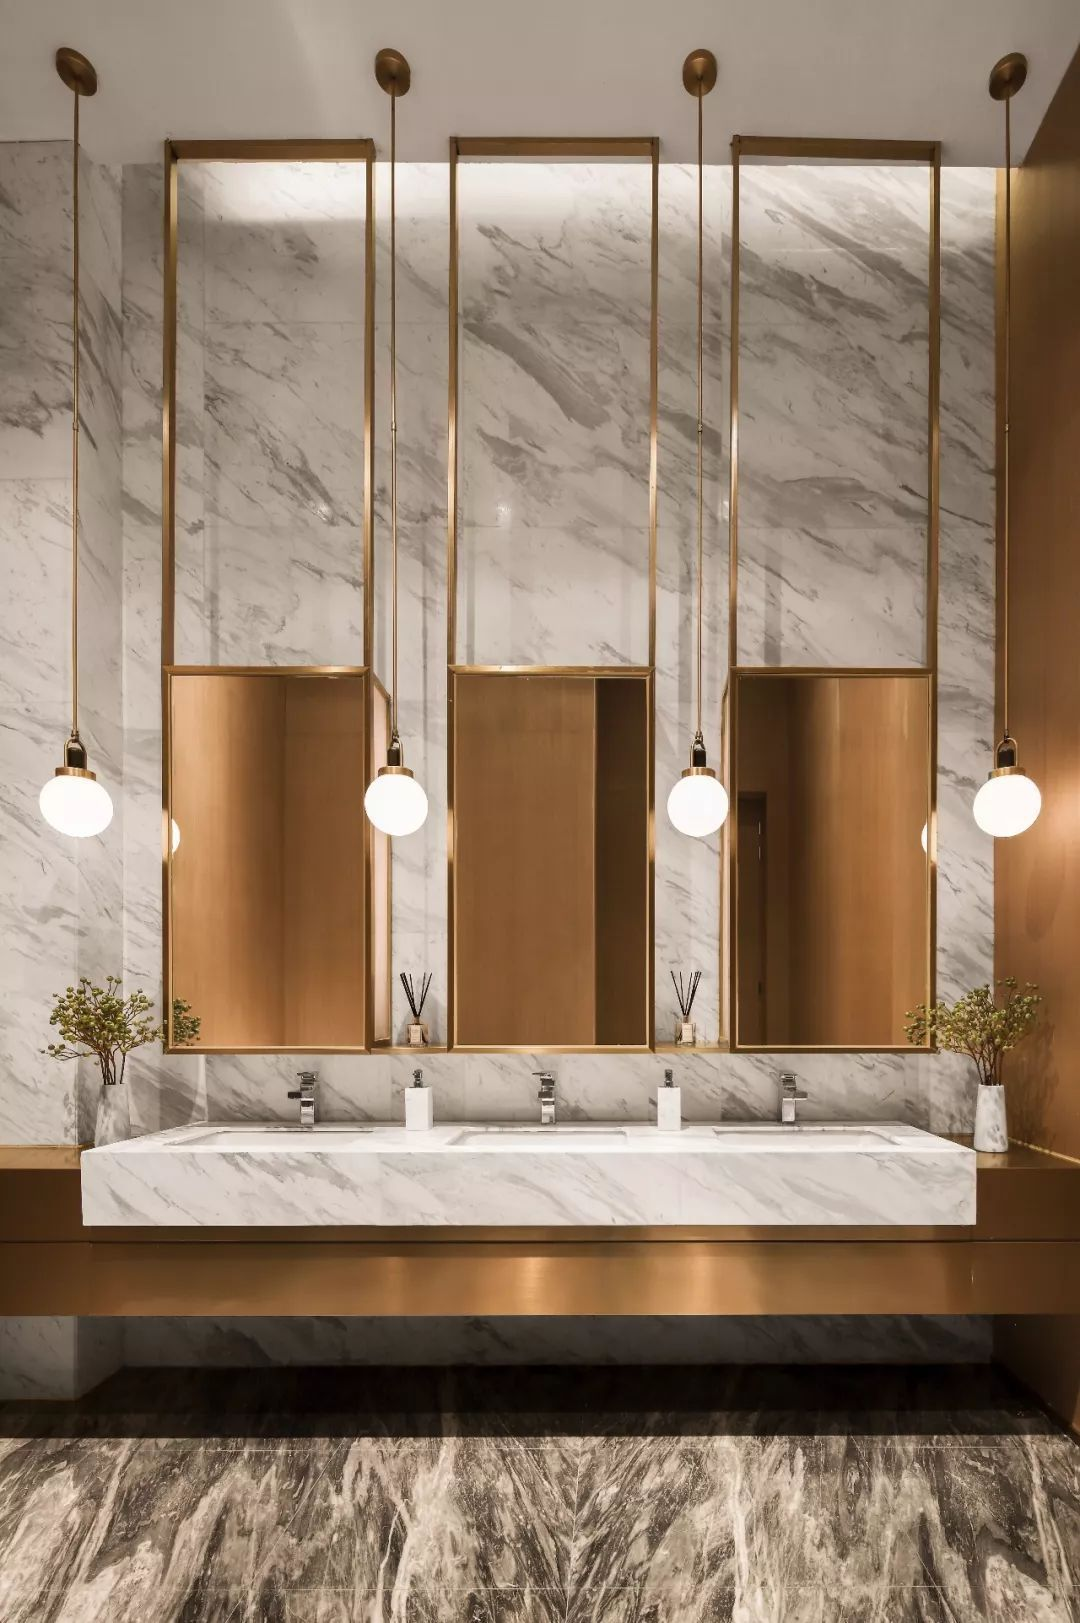 Best Bathroom Lighting 28 Best Bathroom Lighting Ideas To Brighten Your Style 2019